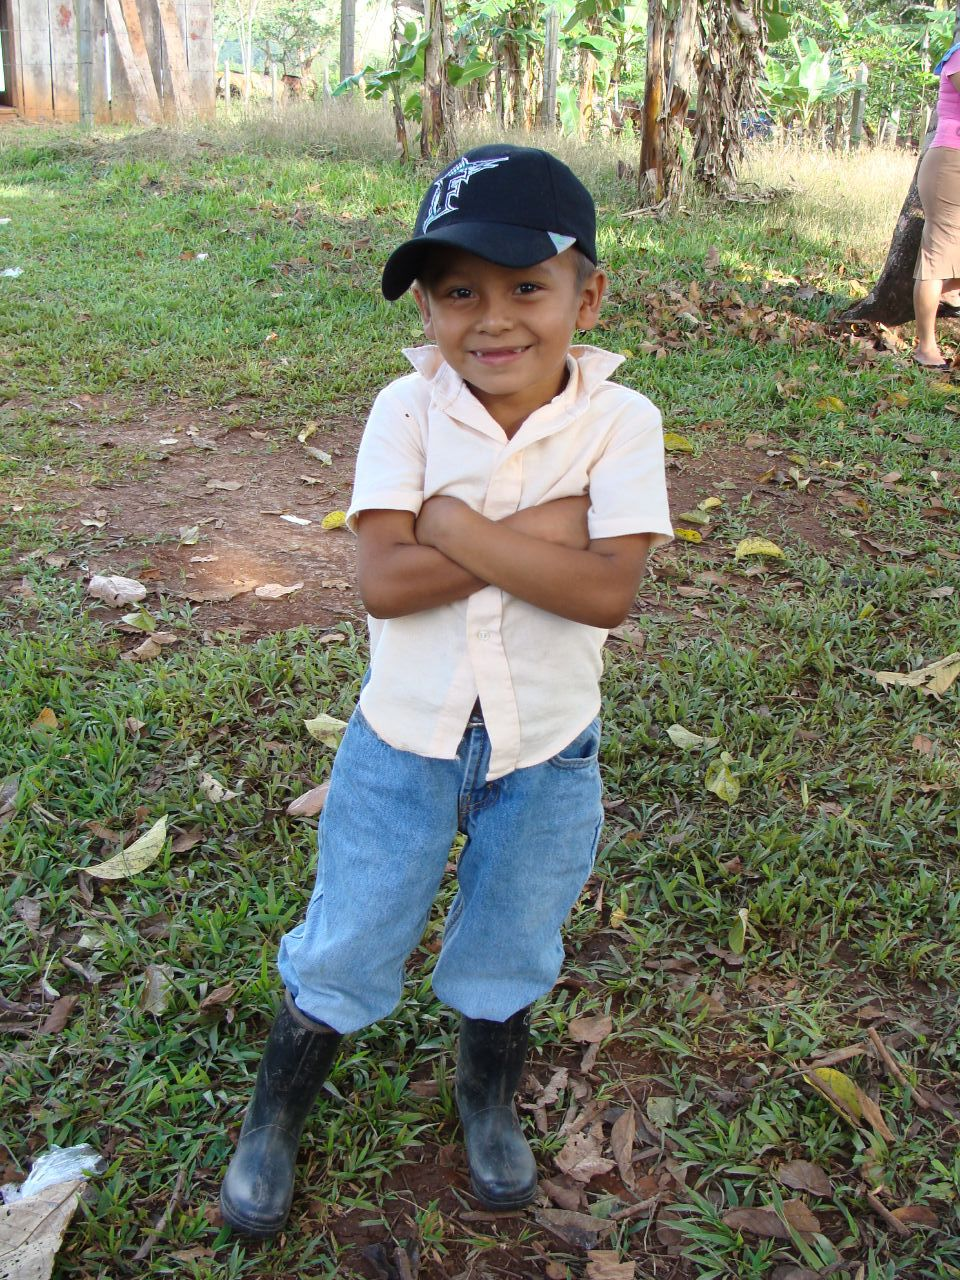 A happy boy (with his standard Central American rubber boots) at the Okawas celebration